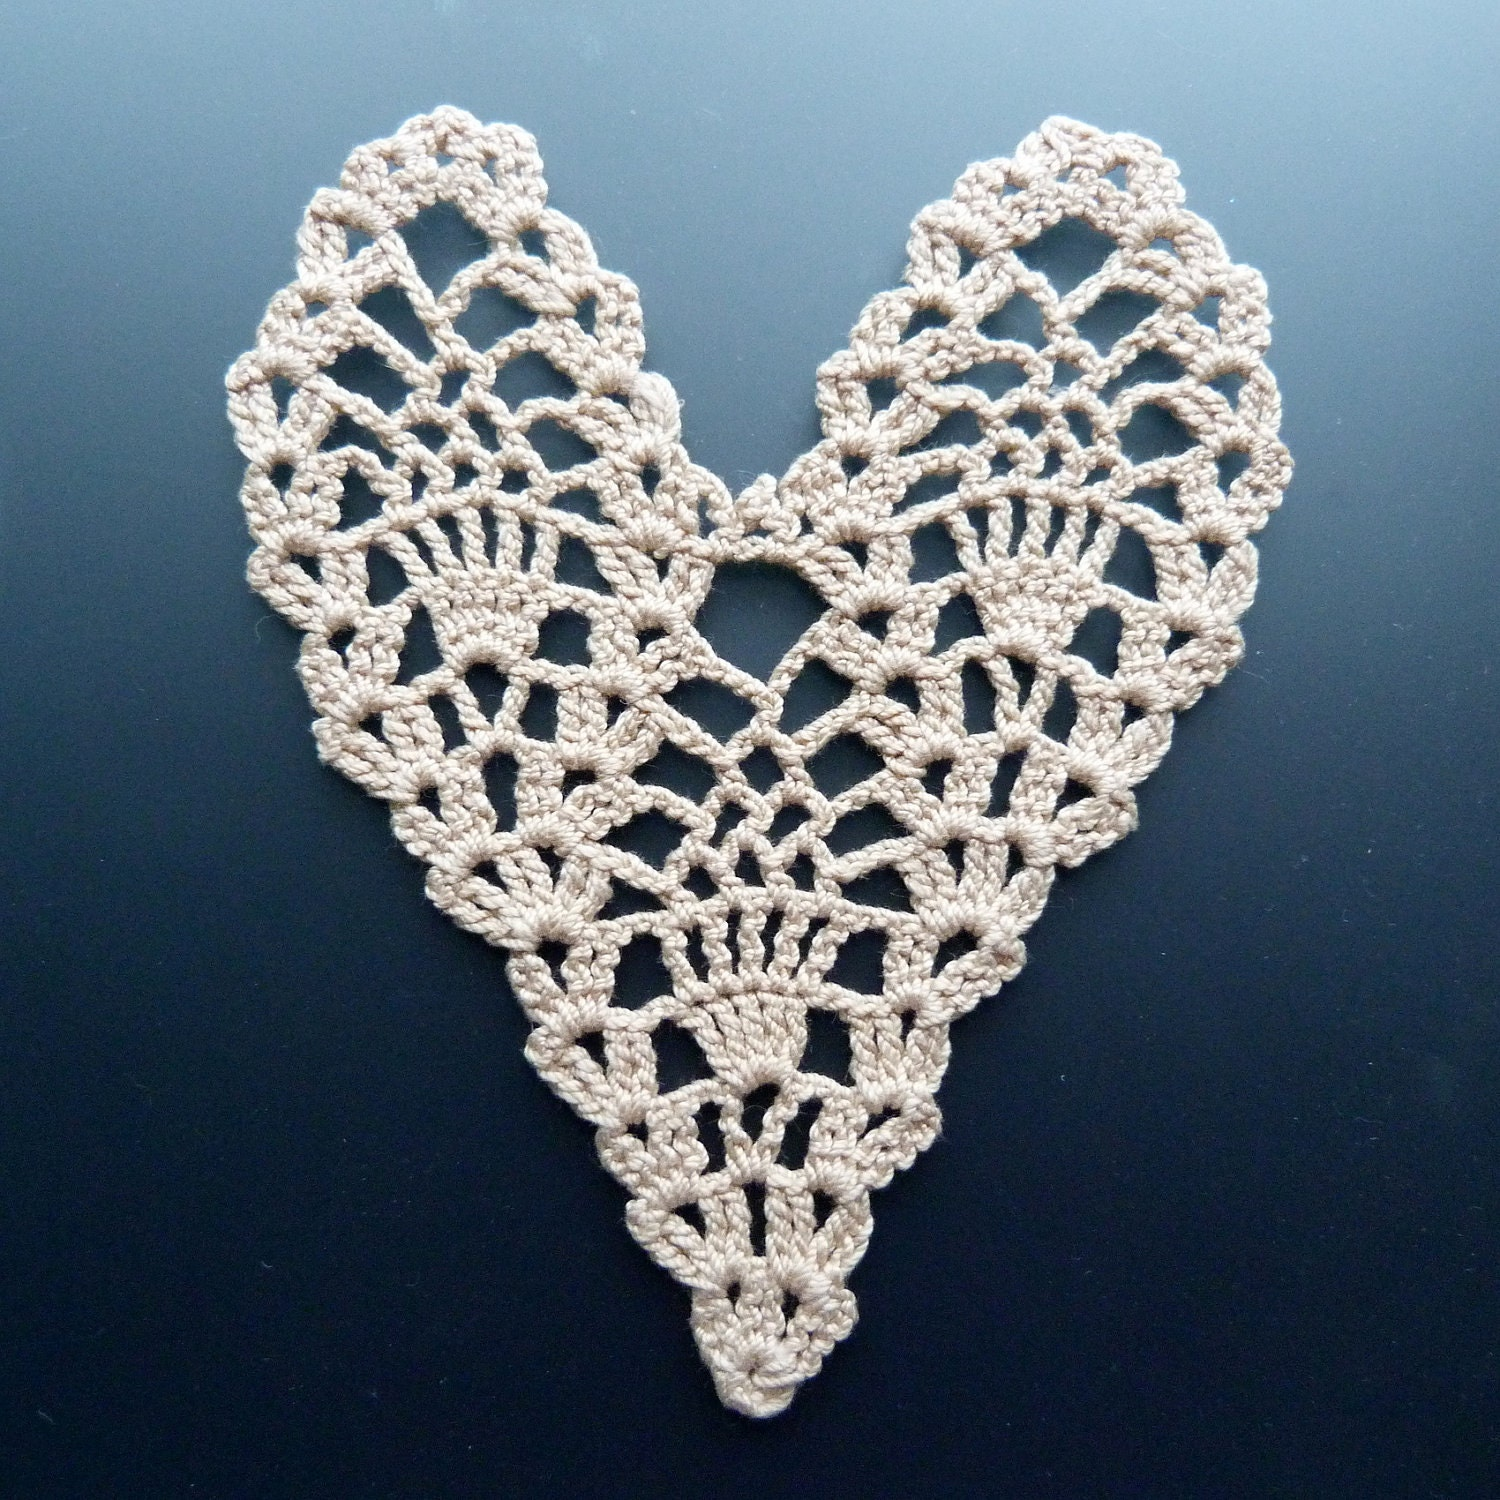 Crocheted Doily - The Heart